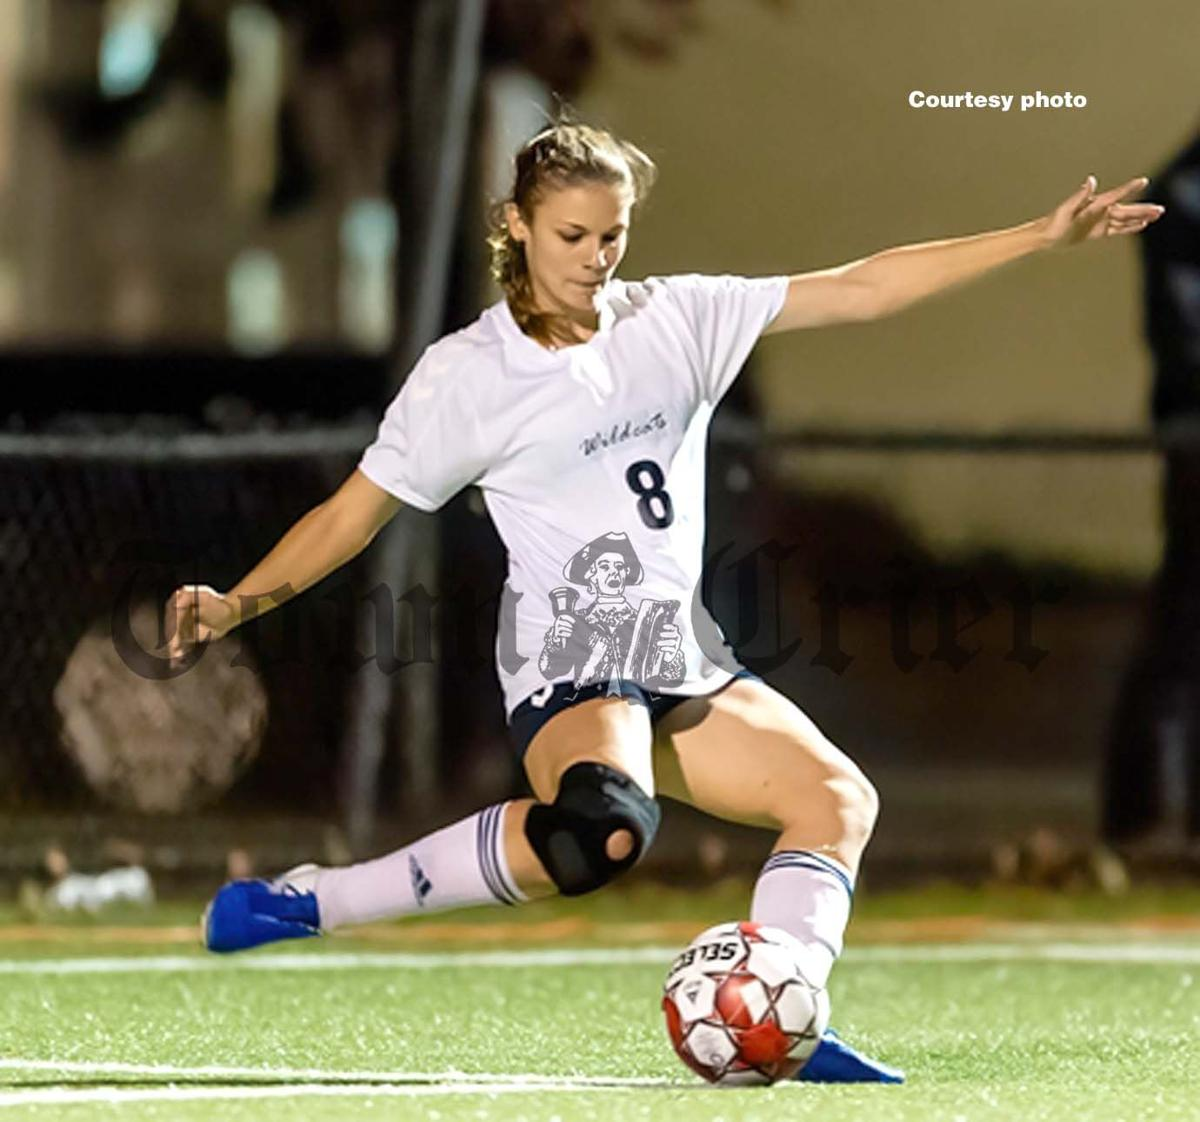 WHS senior Audrey Curdo is one of the three captains on this year's Girls Soccer team